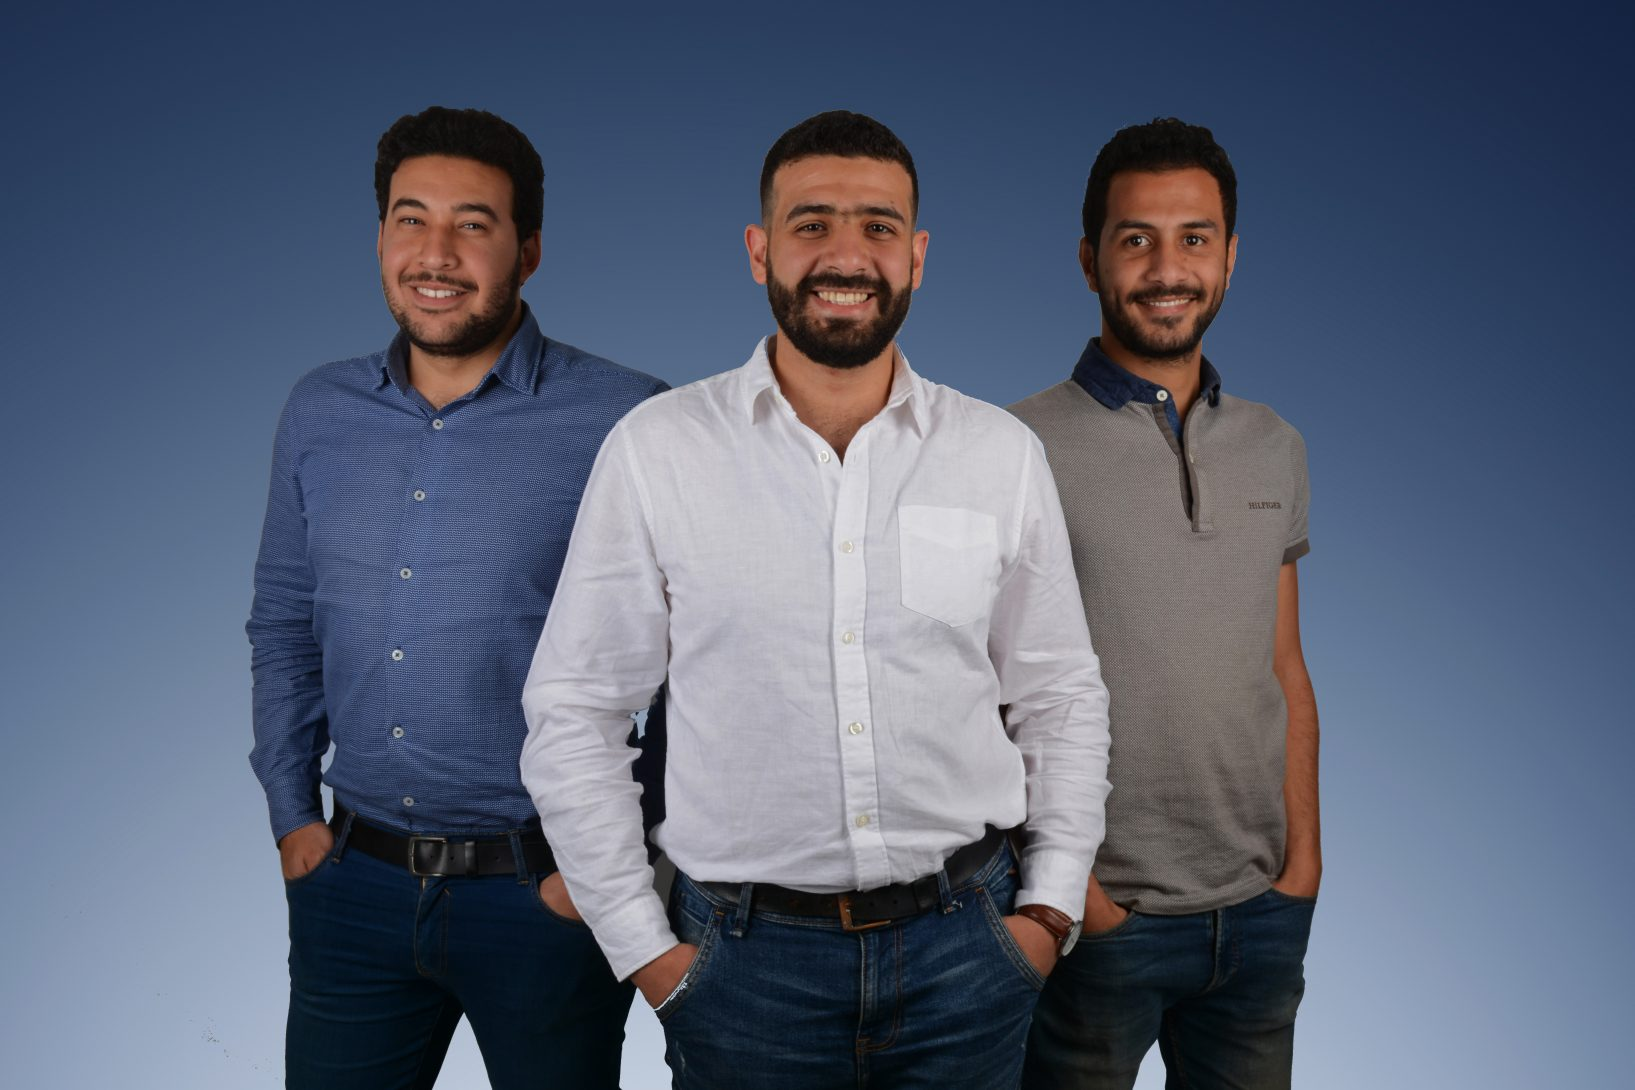 Egypt-Based SWVL Raises $8 Million In Series A Funding